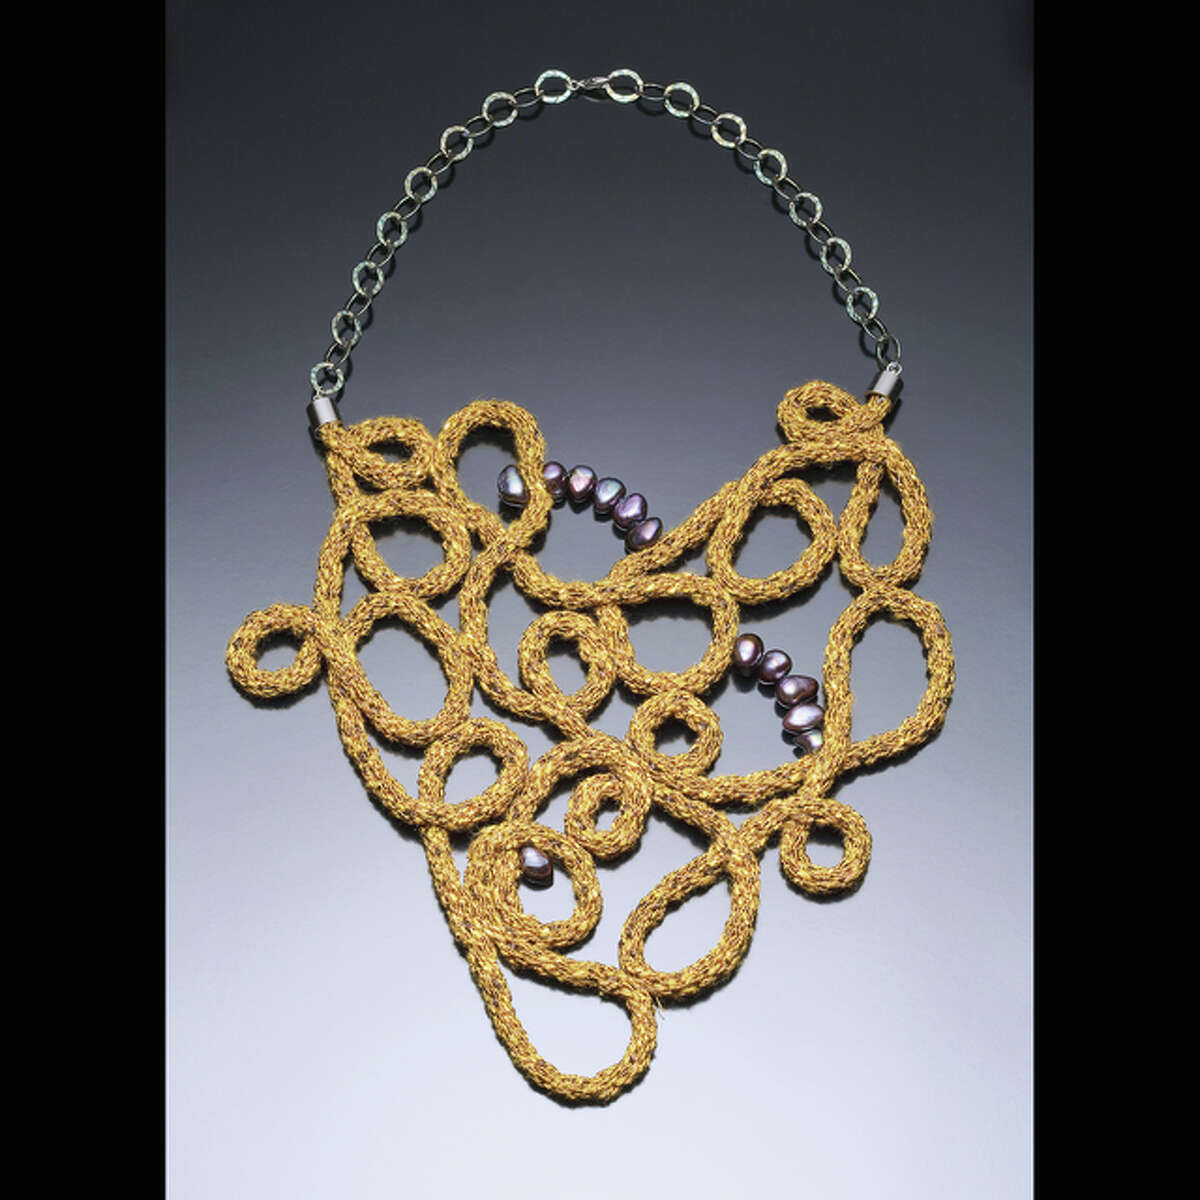 Jewelry by Leigh Roberts will be displayed through May 29 at the Strawn Gallery.